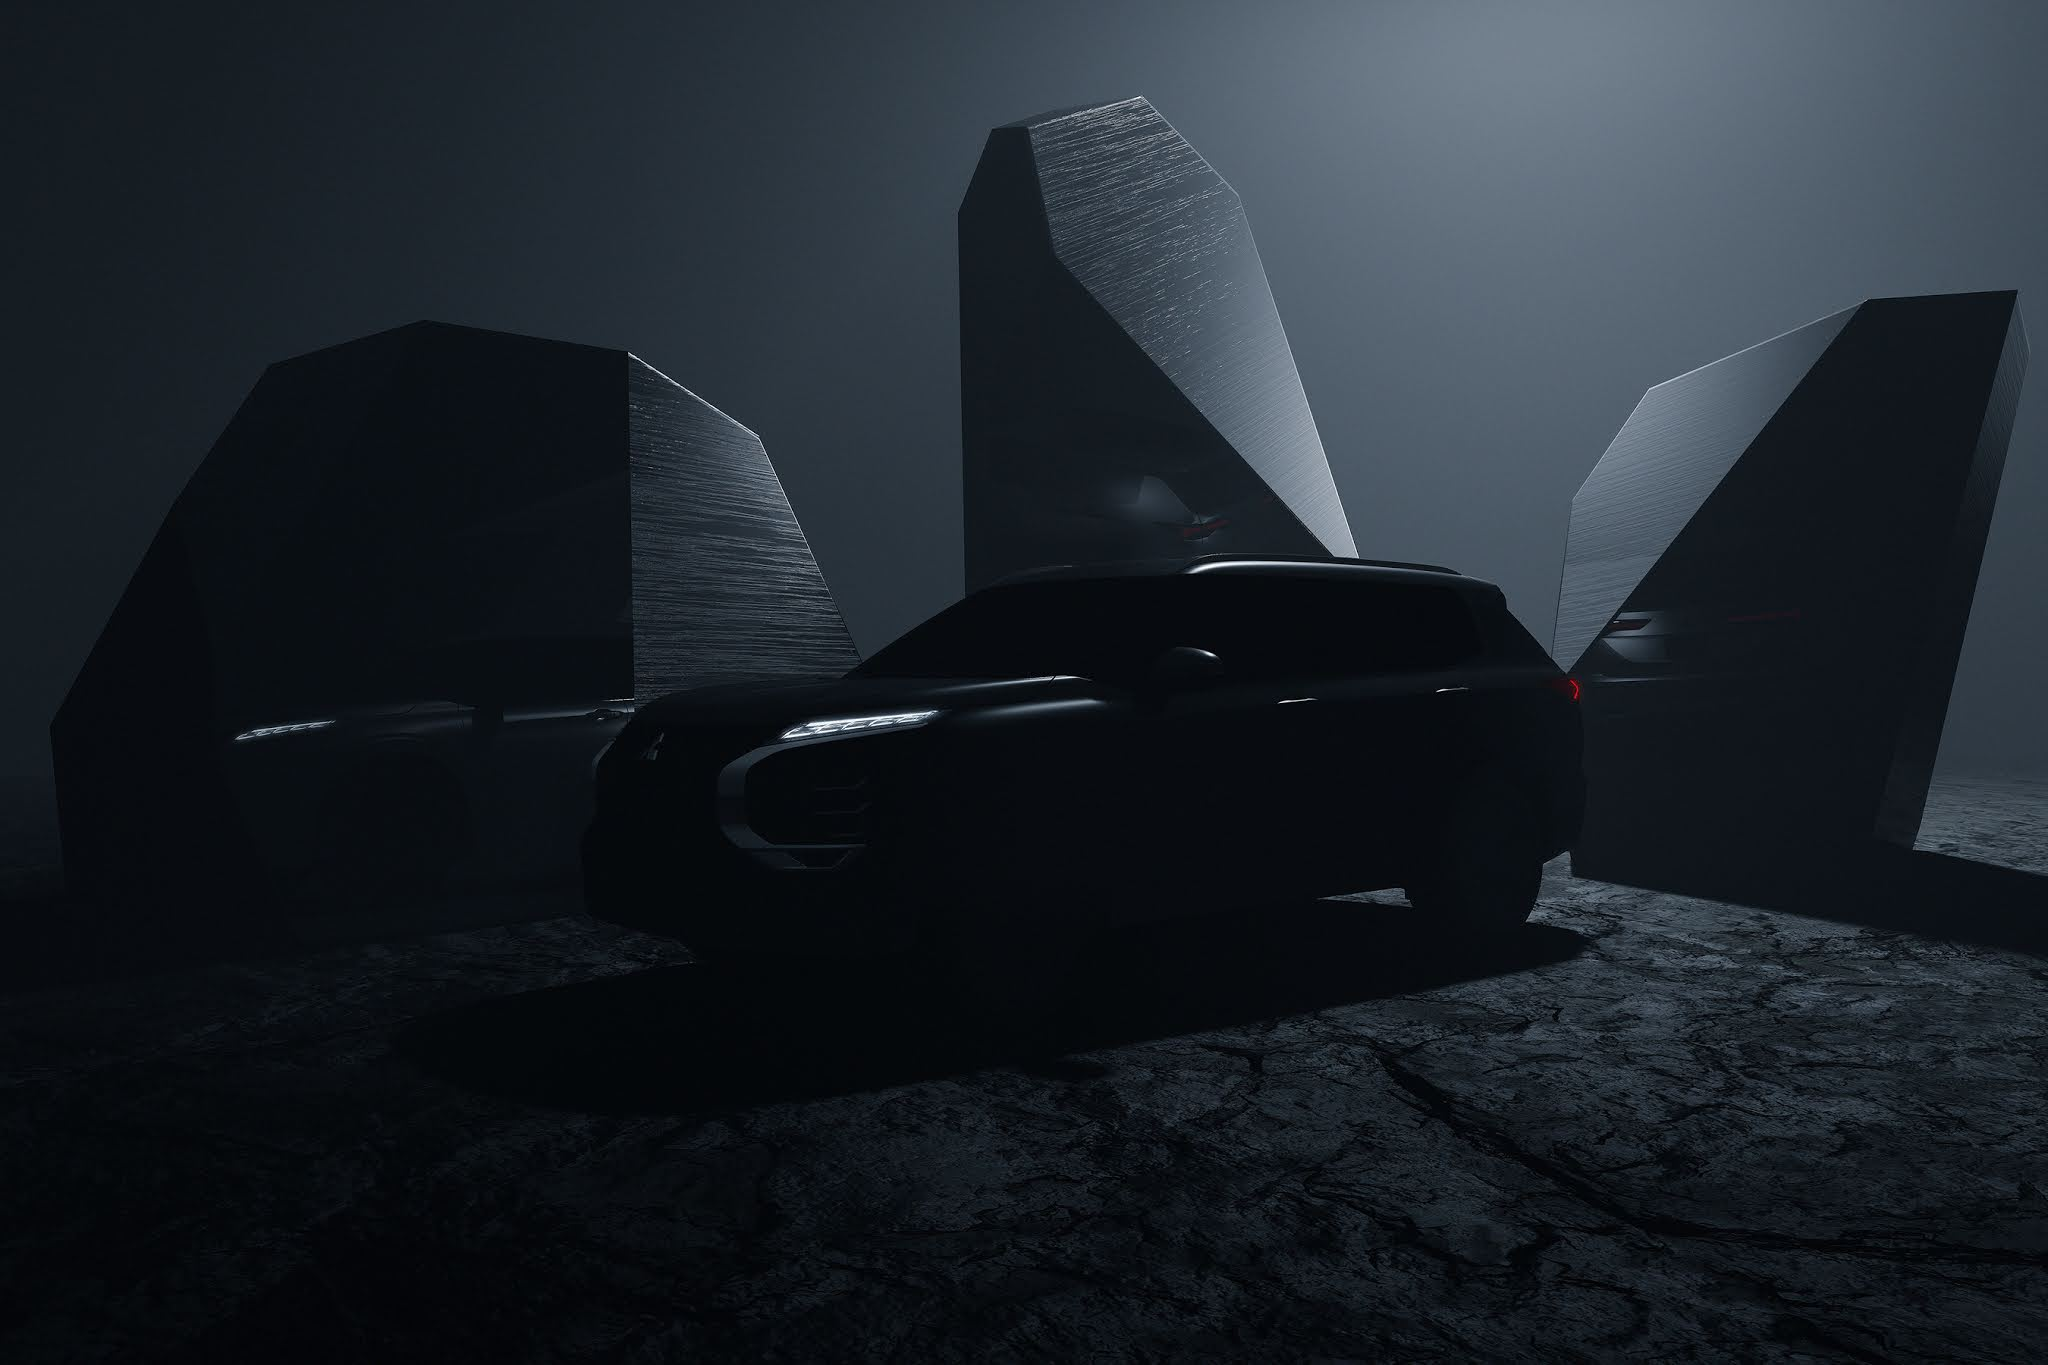 MITSUBISHI MOTORS Provides First Tease of All-new OUTLANDER - Global Reveal